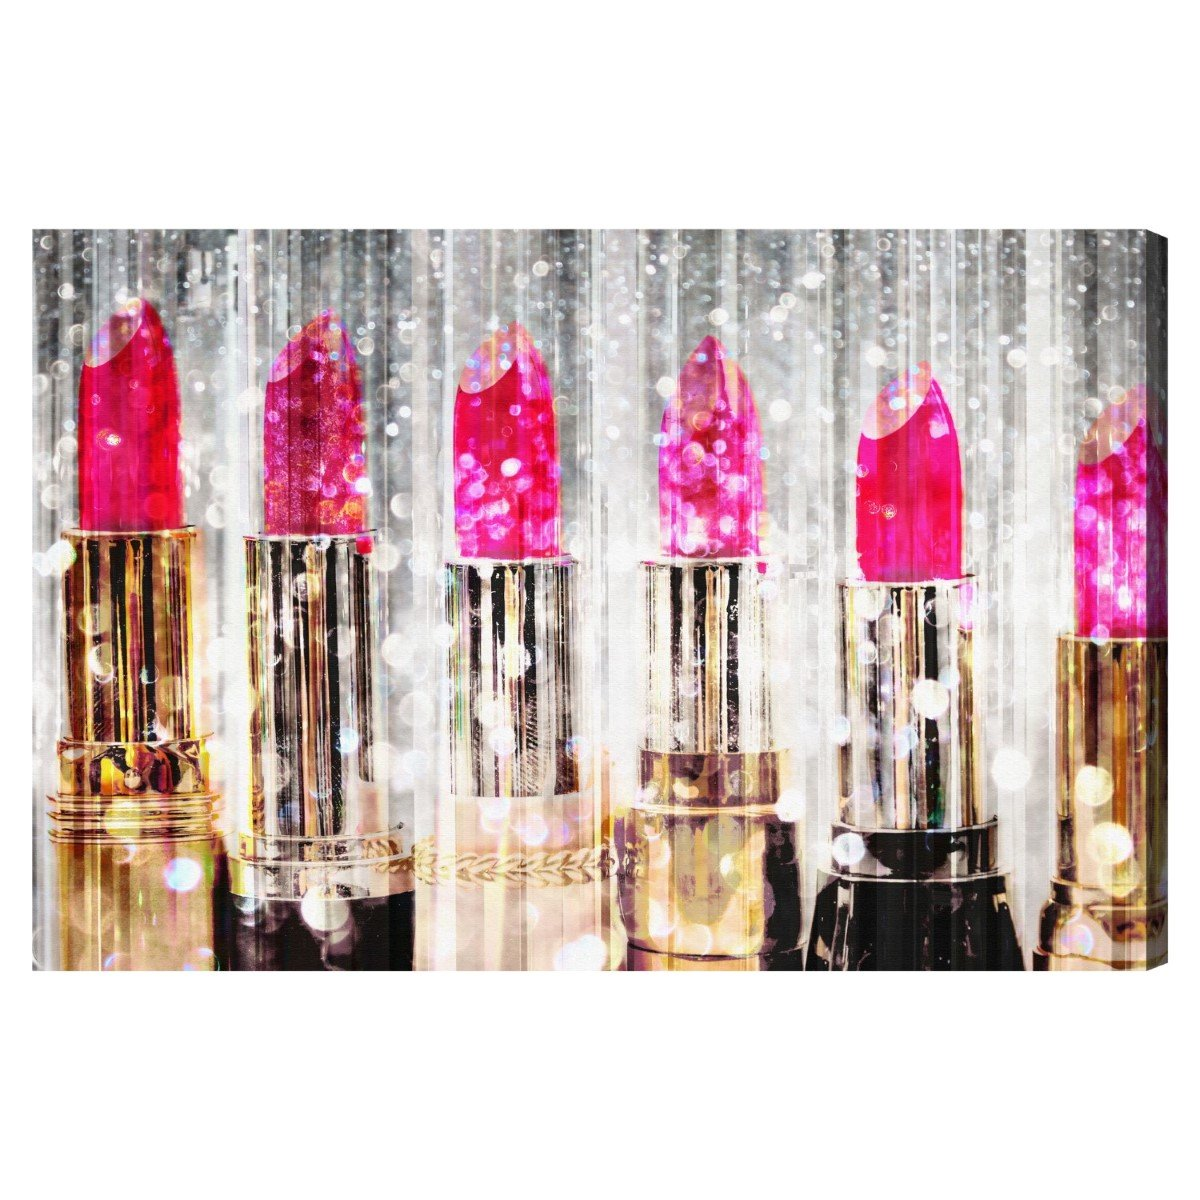 Lipstick Collection' Contemporary Canvas Wall Art Print for Home Decor and Office. The Fashion Wall Decor Collection by The Oliver Gal Artist Co. Gallery Wrapped and Ready to Hang. 36x24 inch